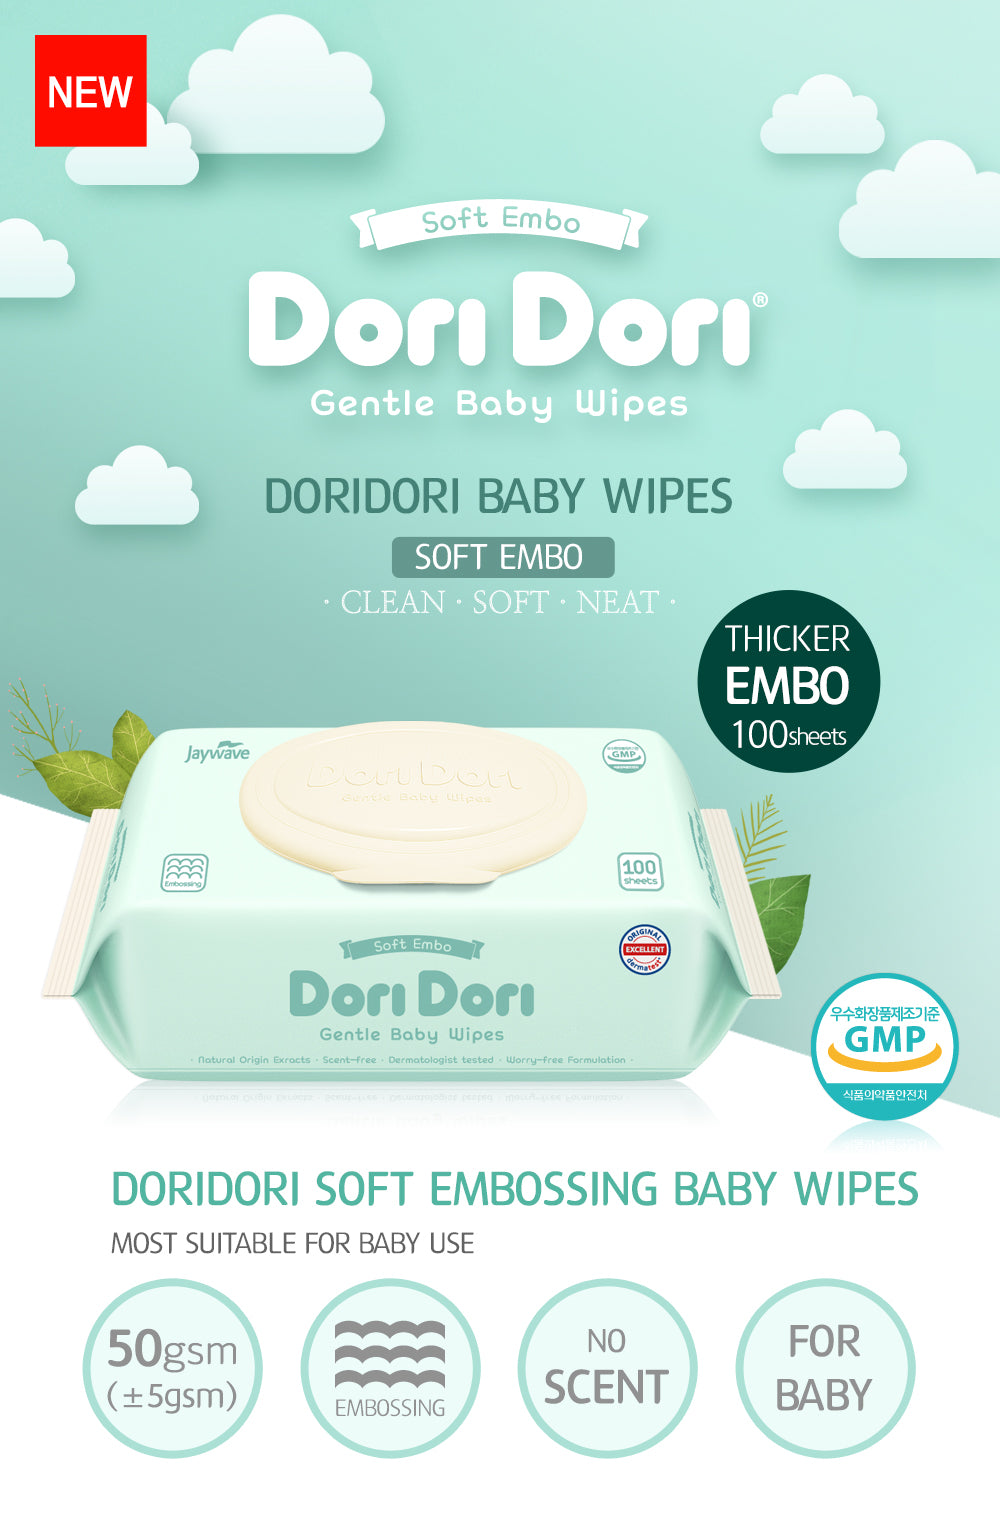 Dori Dori Soft Embossing CAP 100 sheets x 10 packs